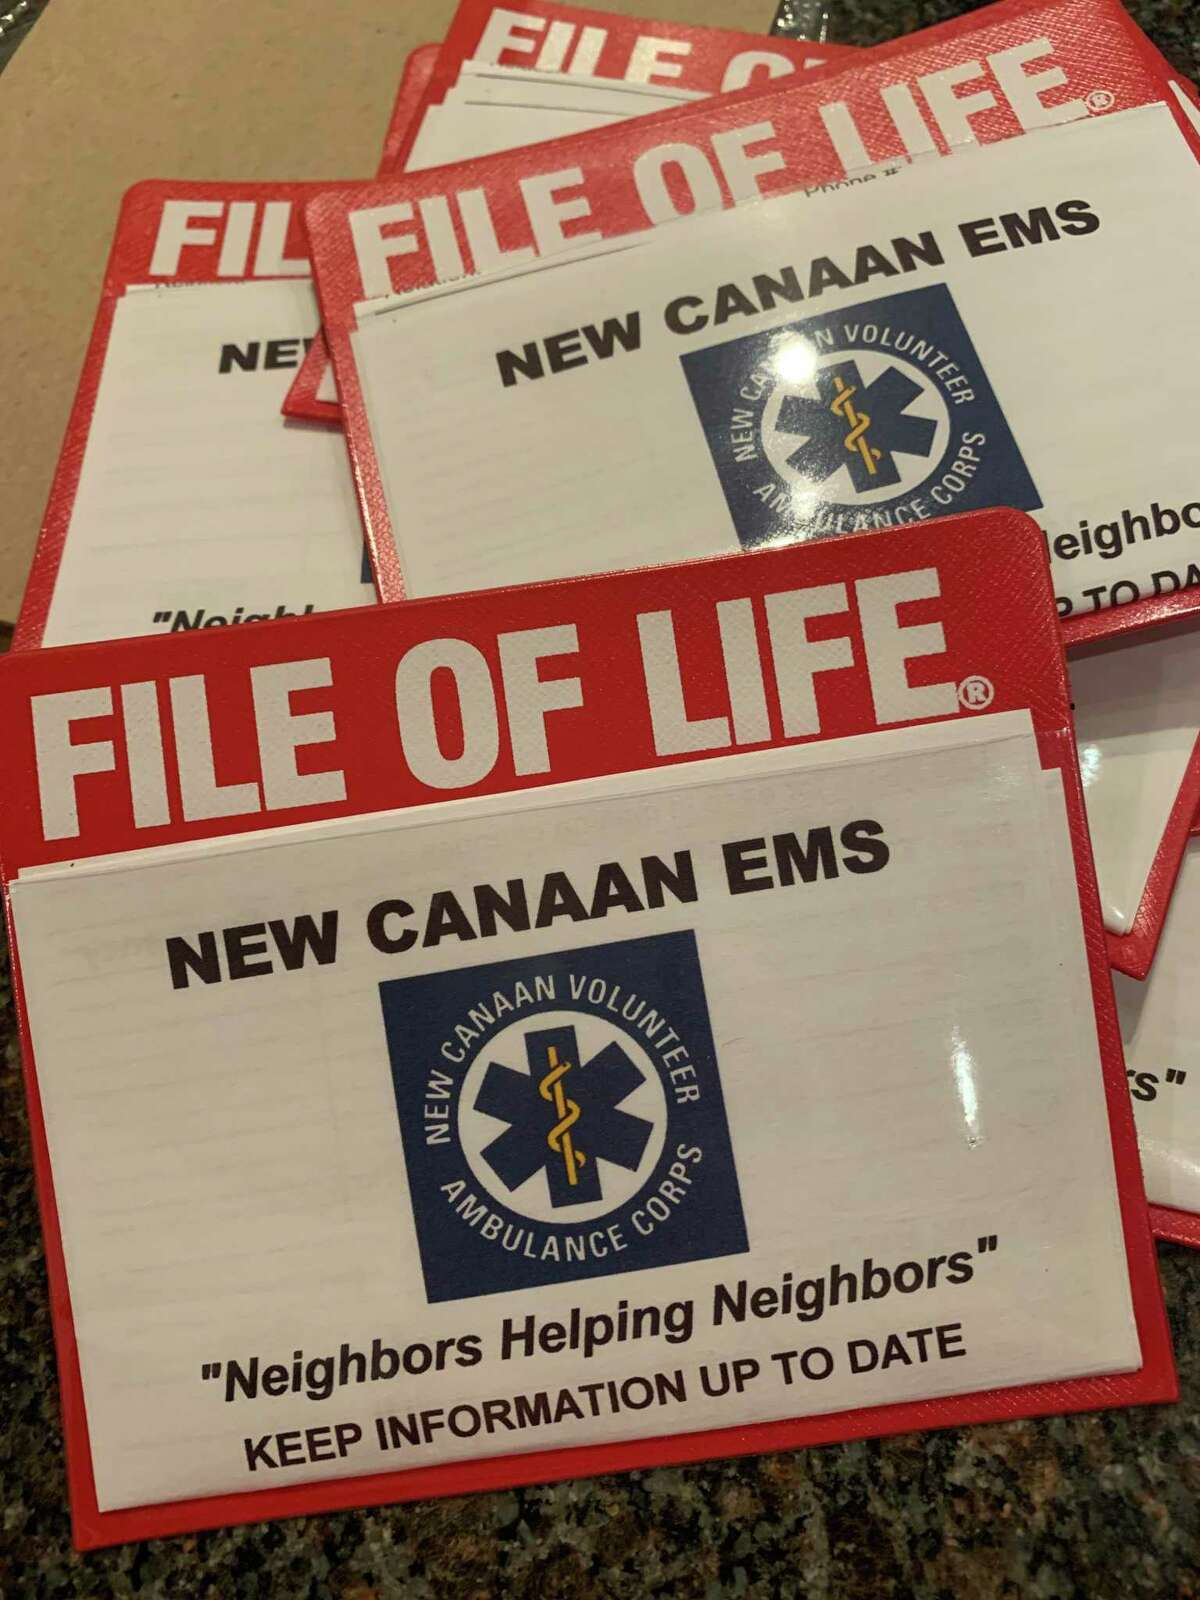 The File of Life, which is a simple document, provides a single place to record important medical information for use during an emergency. Barbara Achenbaum, who is the executive director of the nonprofit organization Staying Put in New Canaan, writes about communication being key in such an event where the File becomes extremely handy, and National Healthcare Decisions Day, in this column. National Healthcare Decisions Day is on Thursday, April 16, 2020.